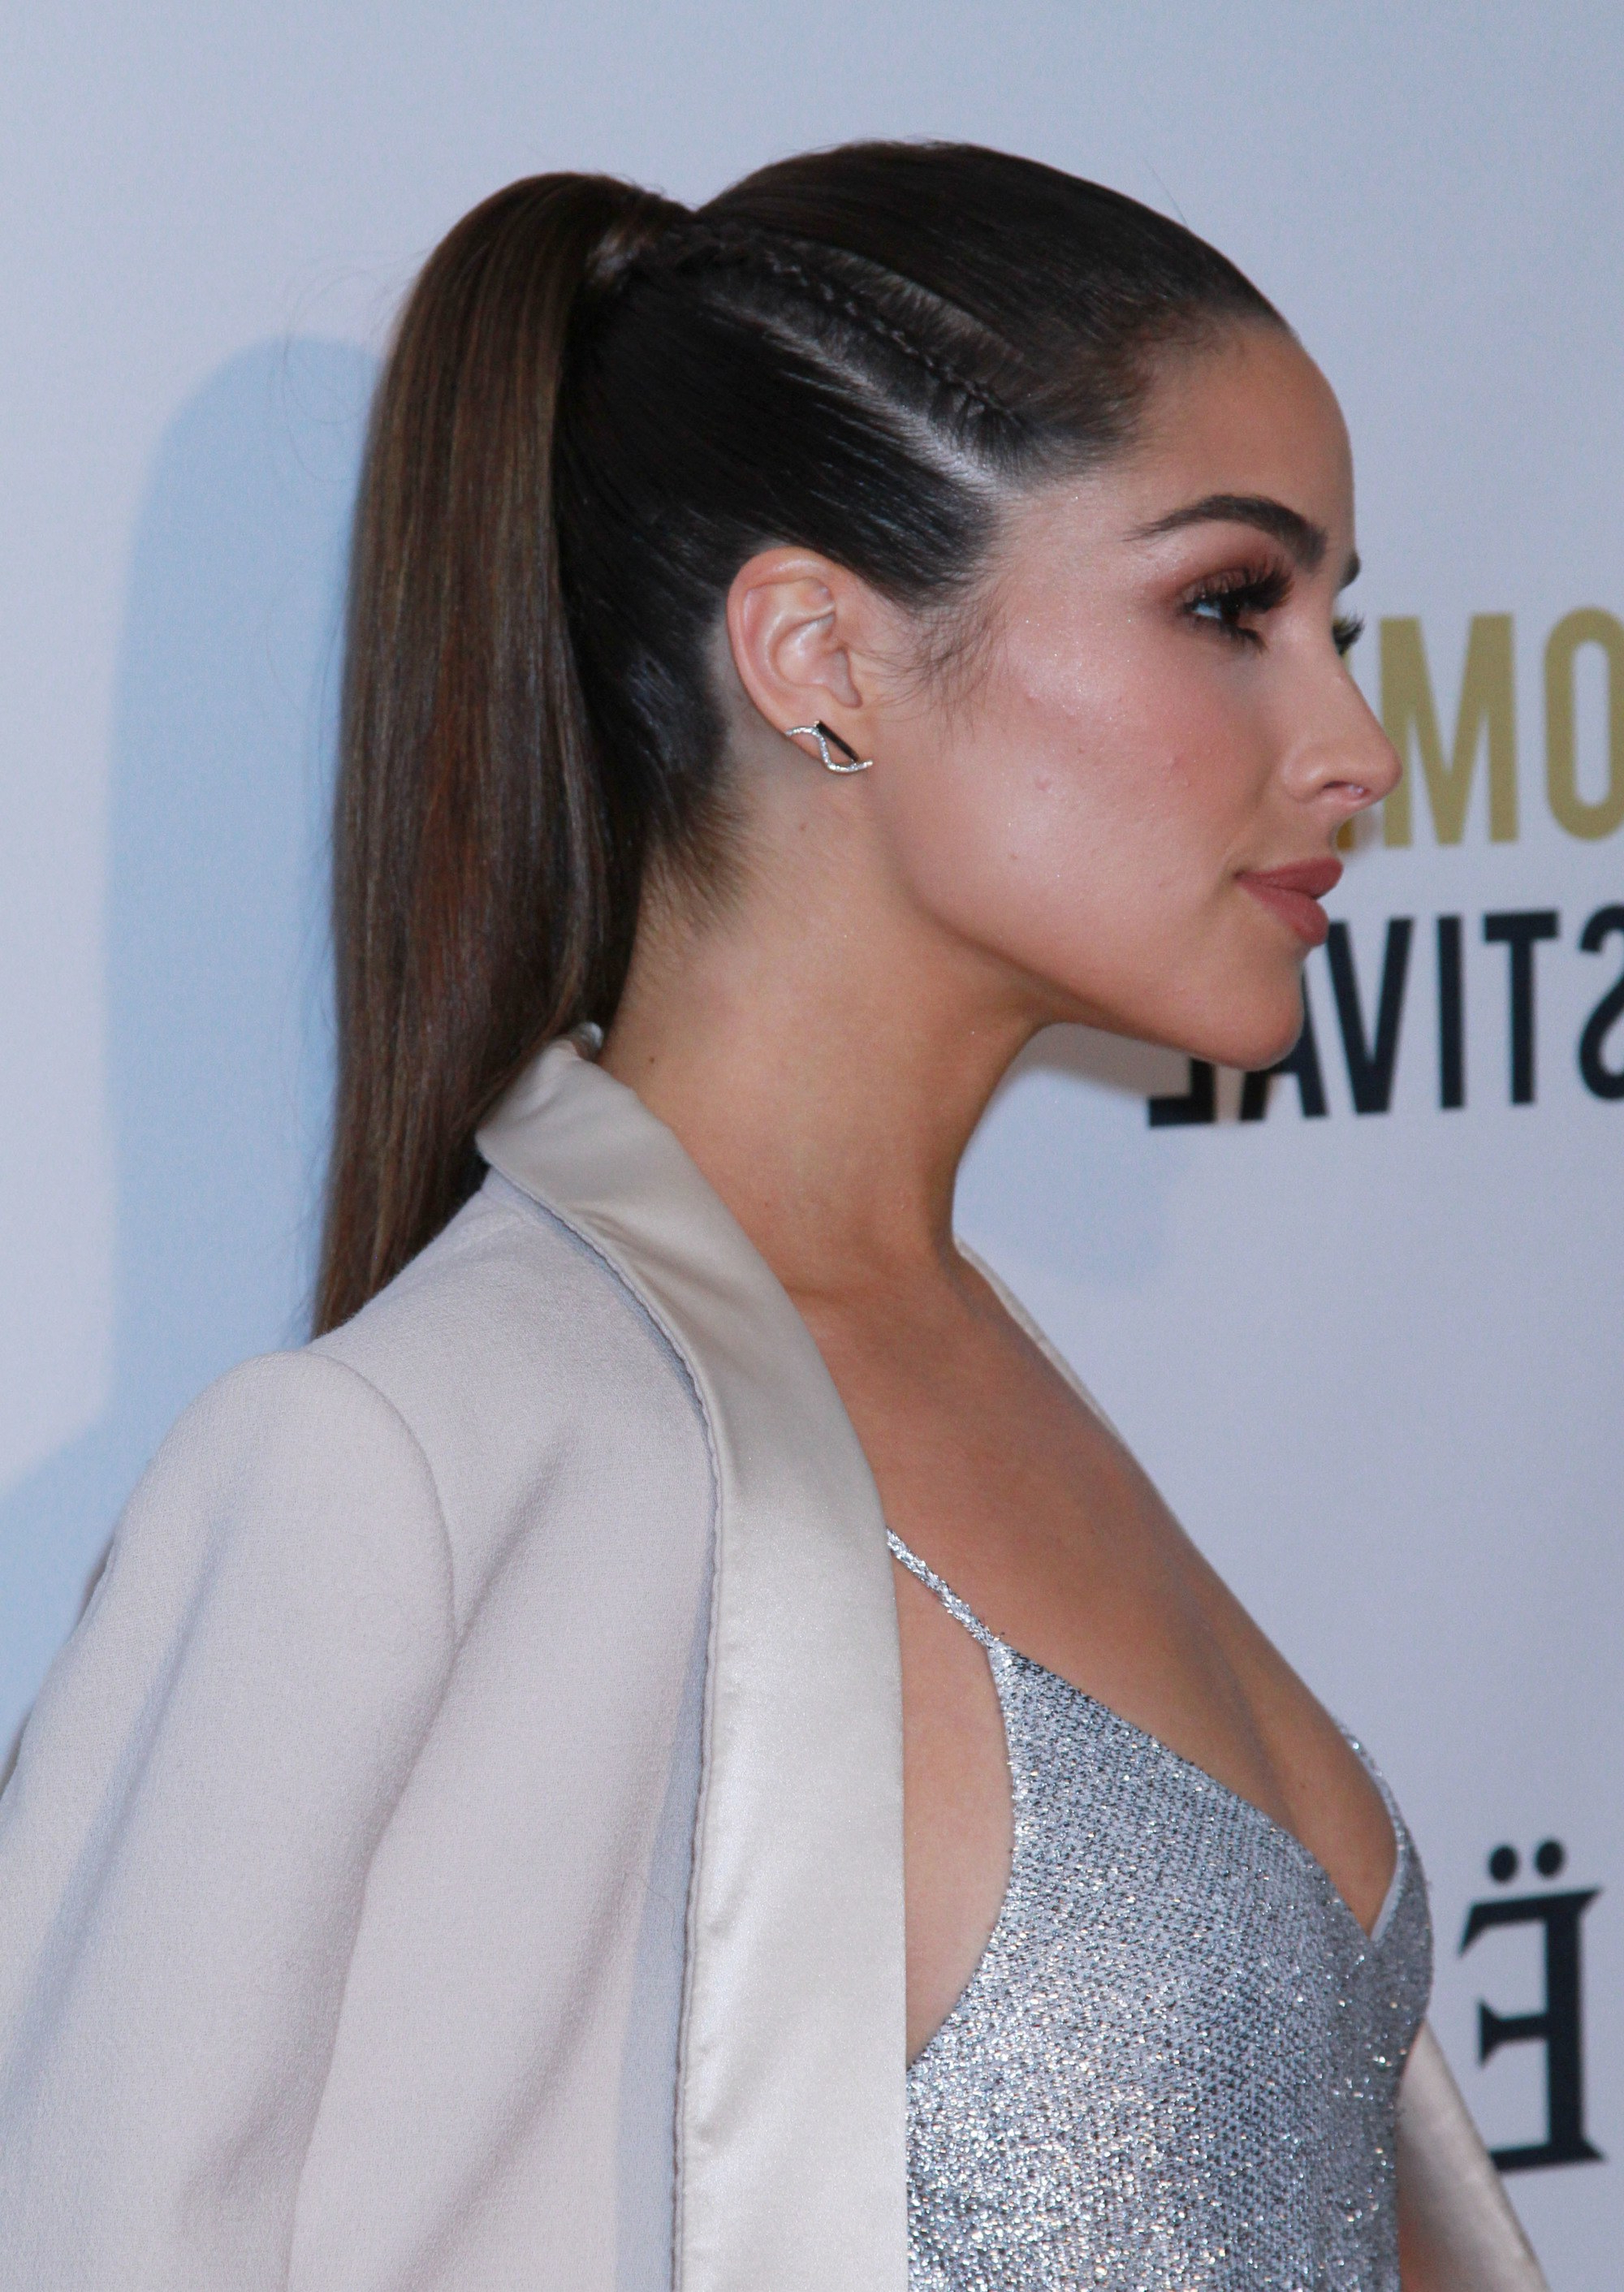 18 Side Braid Hairstyles To Inspire Your Next Look (2019 Update) With Widely Used High Ponytail Braided Hairstyles (View 2 of 20)